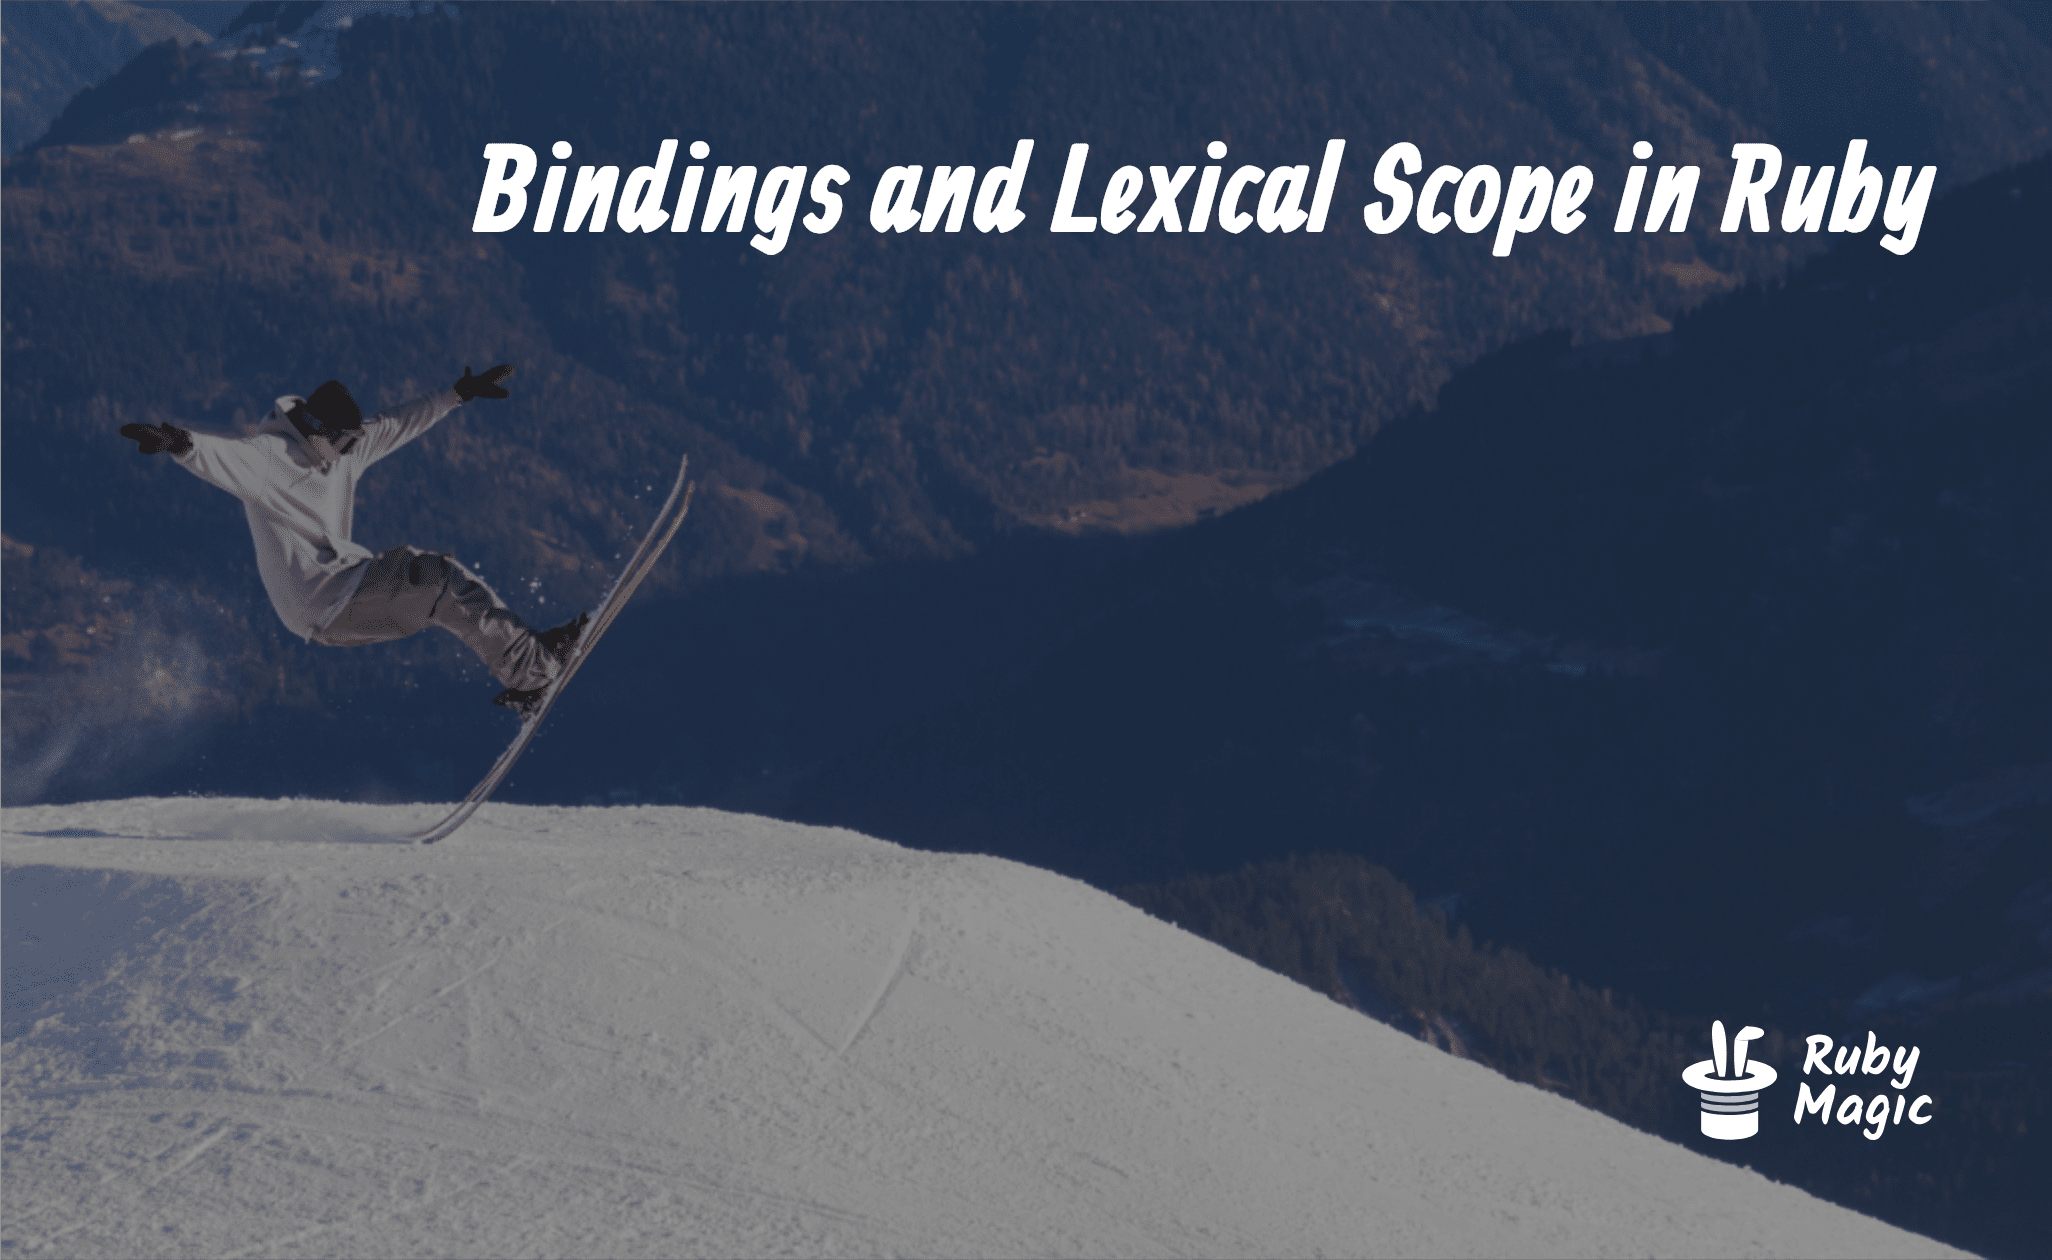 Bindings and Lexical Scope in Ruby